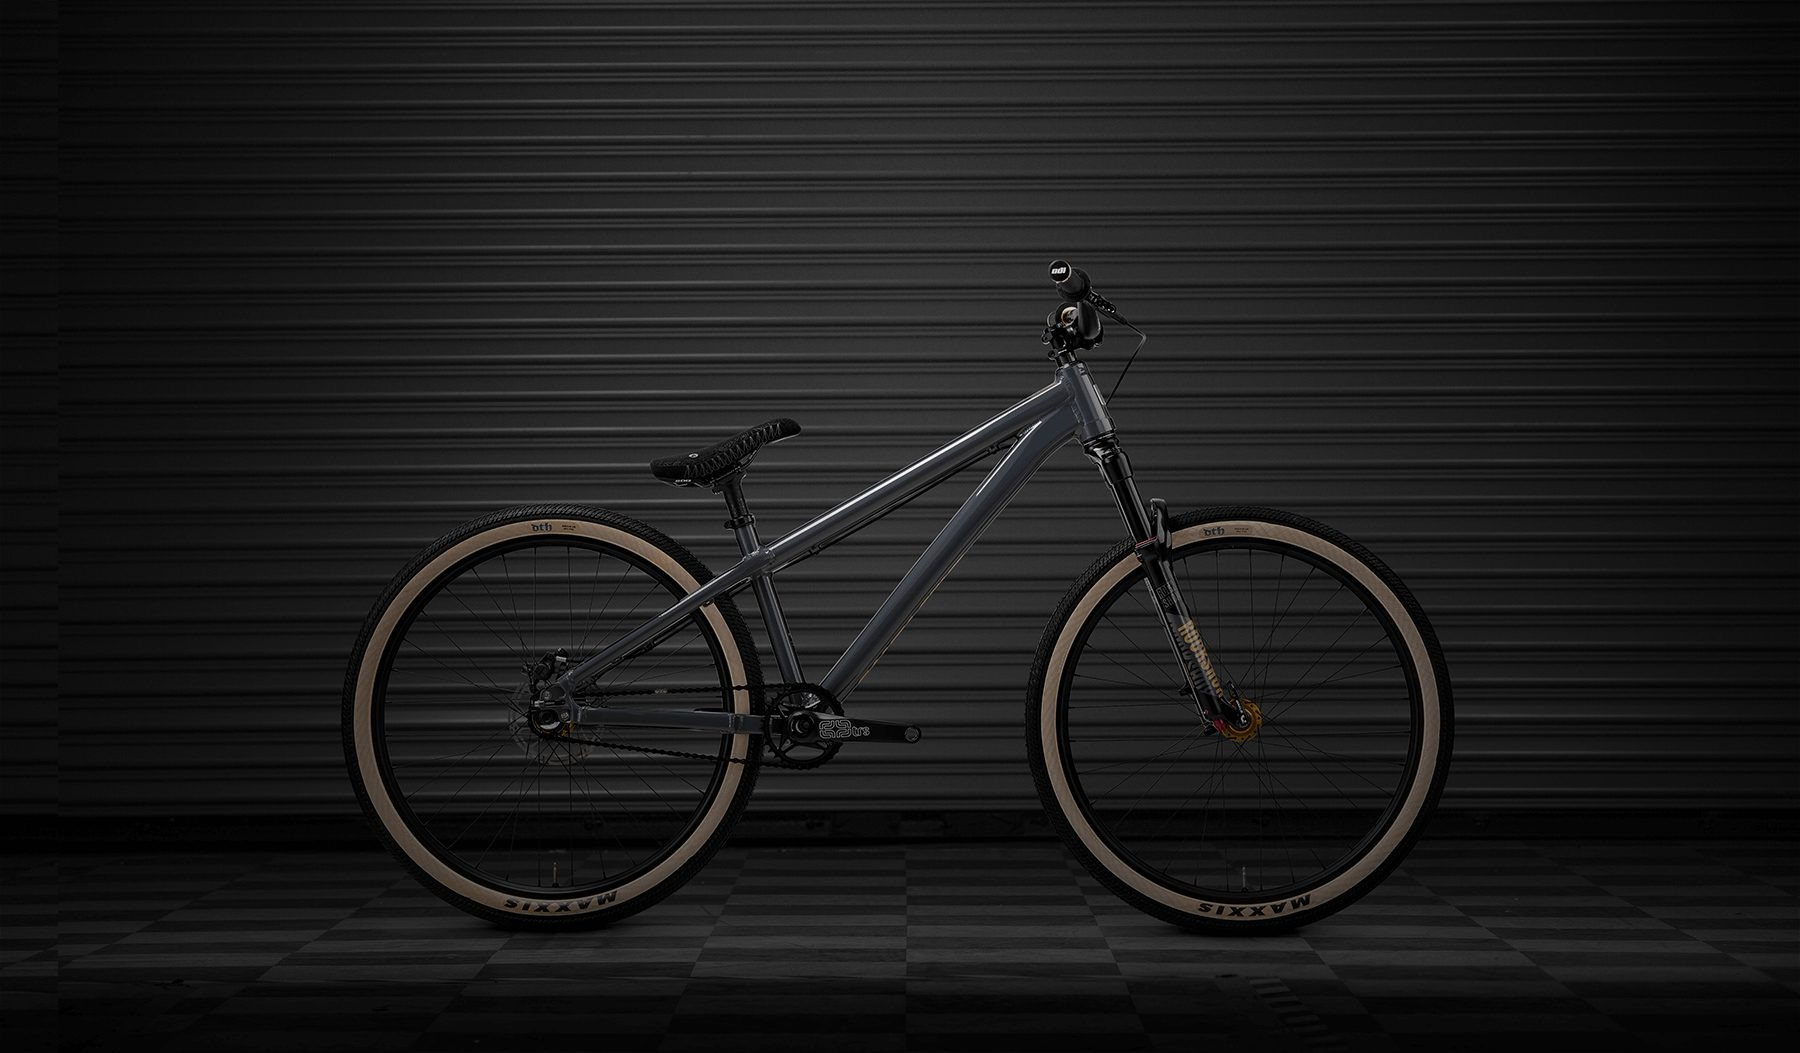 2018 Santa Cruz Jackal Dirt Jumper